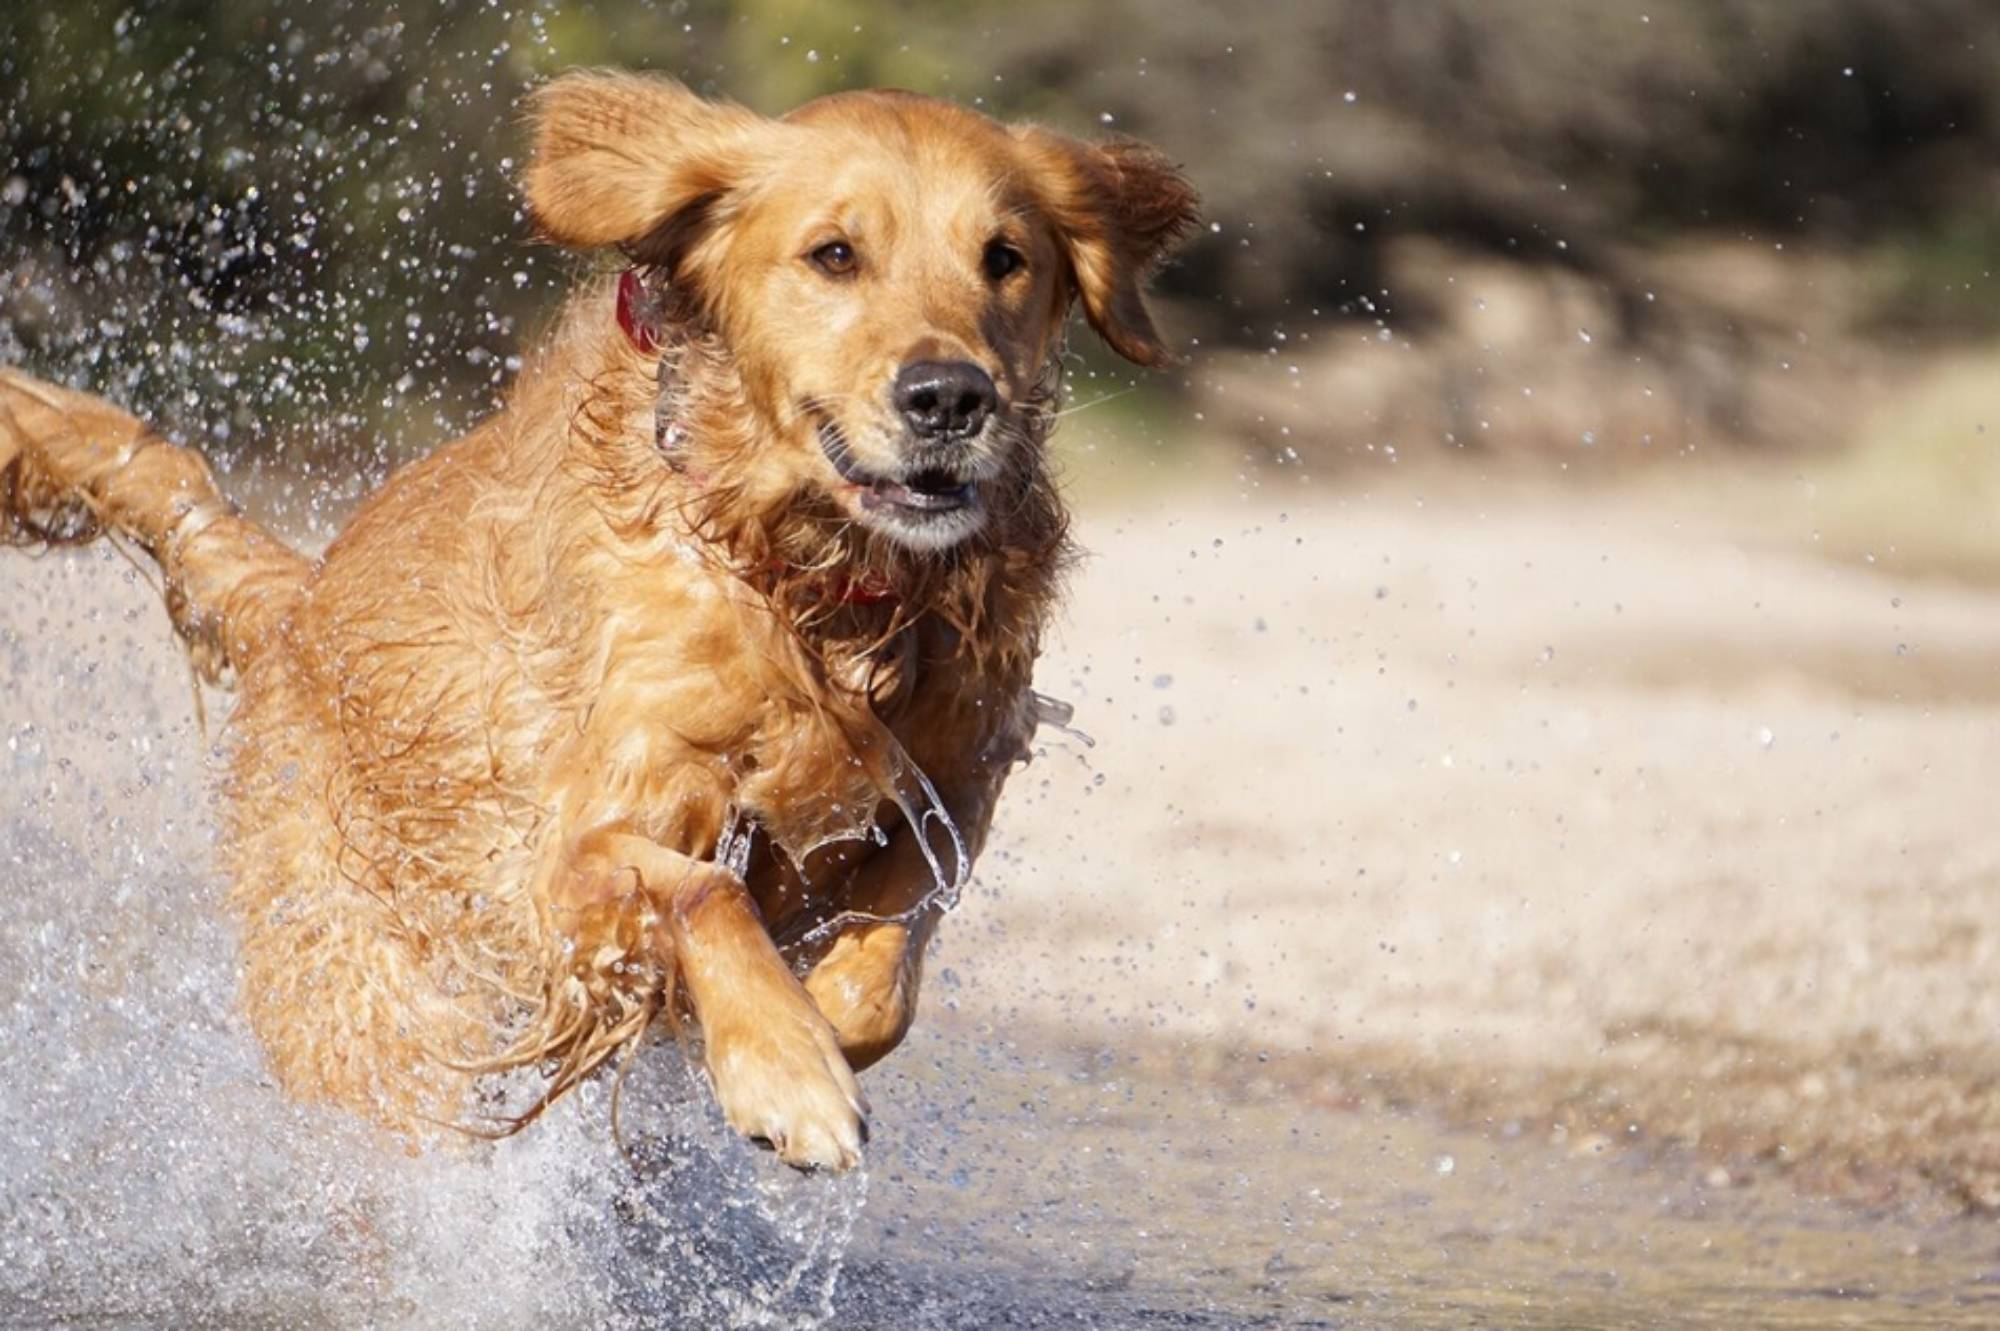 Golden retriever dog running through water by a beach, photographed with the Sony 55-210mm f/4.5-6.3 OSS lens